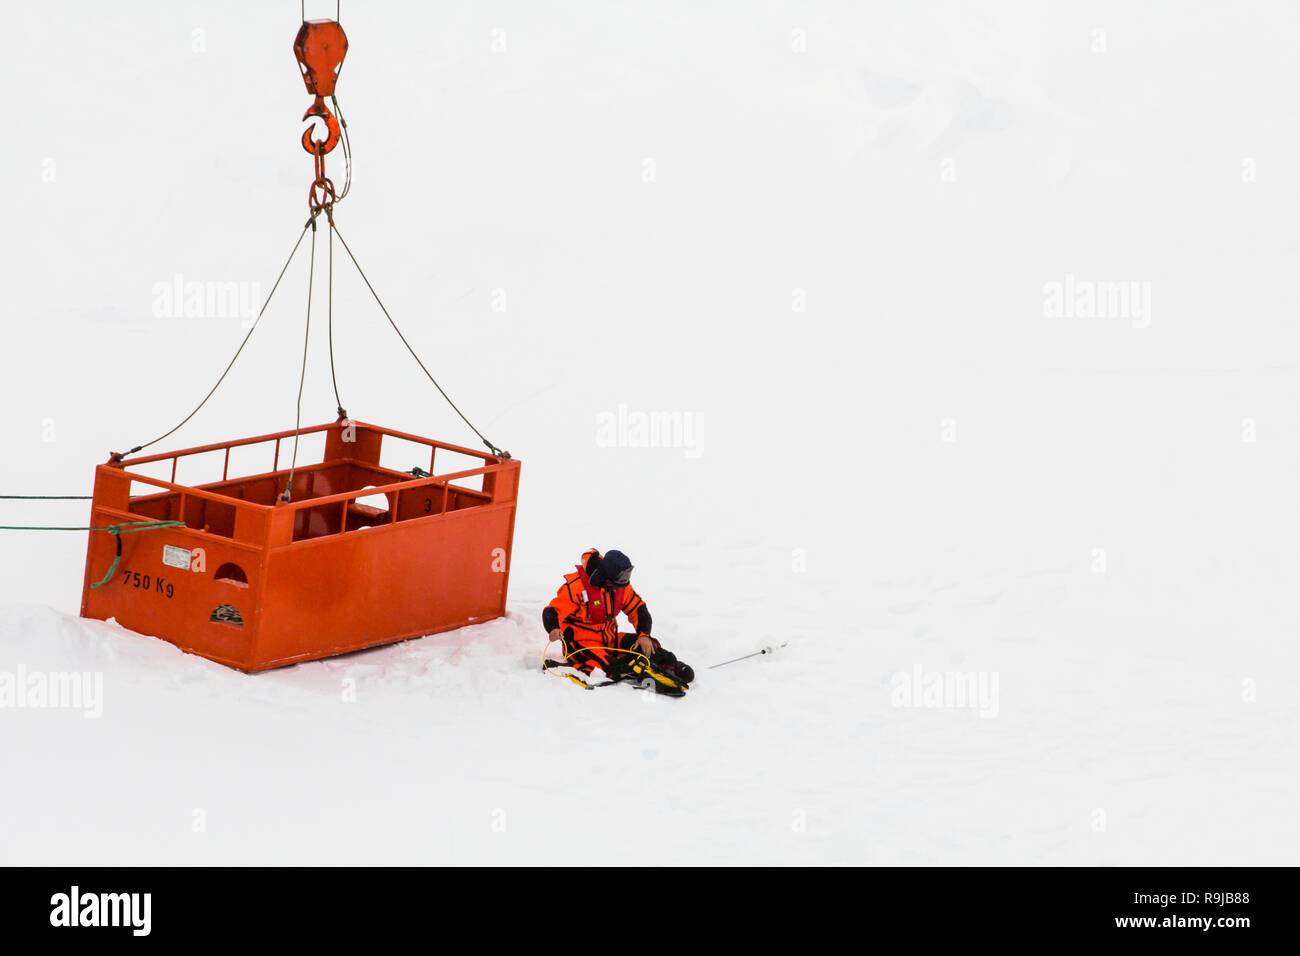 Weddell Sea, Antarctica – August 30, 2013: Scientists from research icebreaker Polarstern are measuring scientific parameters over an ice floe in emer - Stock Image